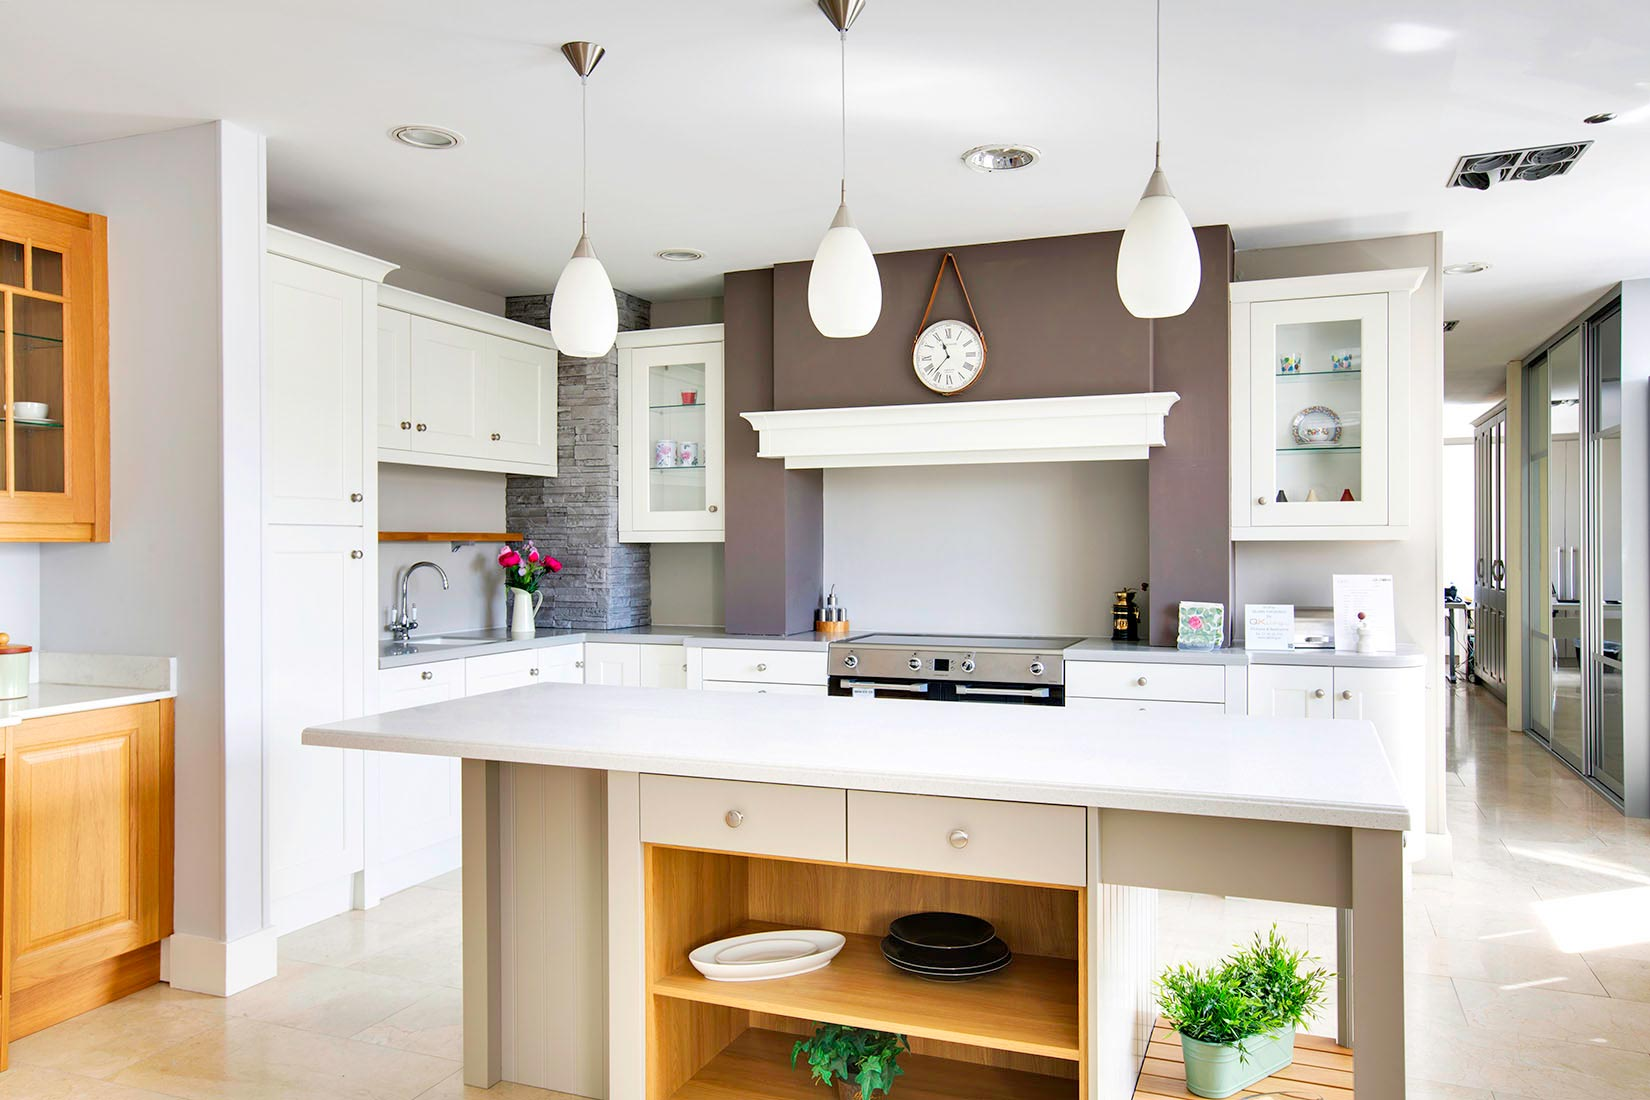 QK Living Kitchen Design, Dublin